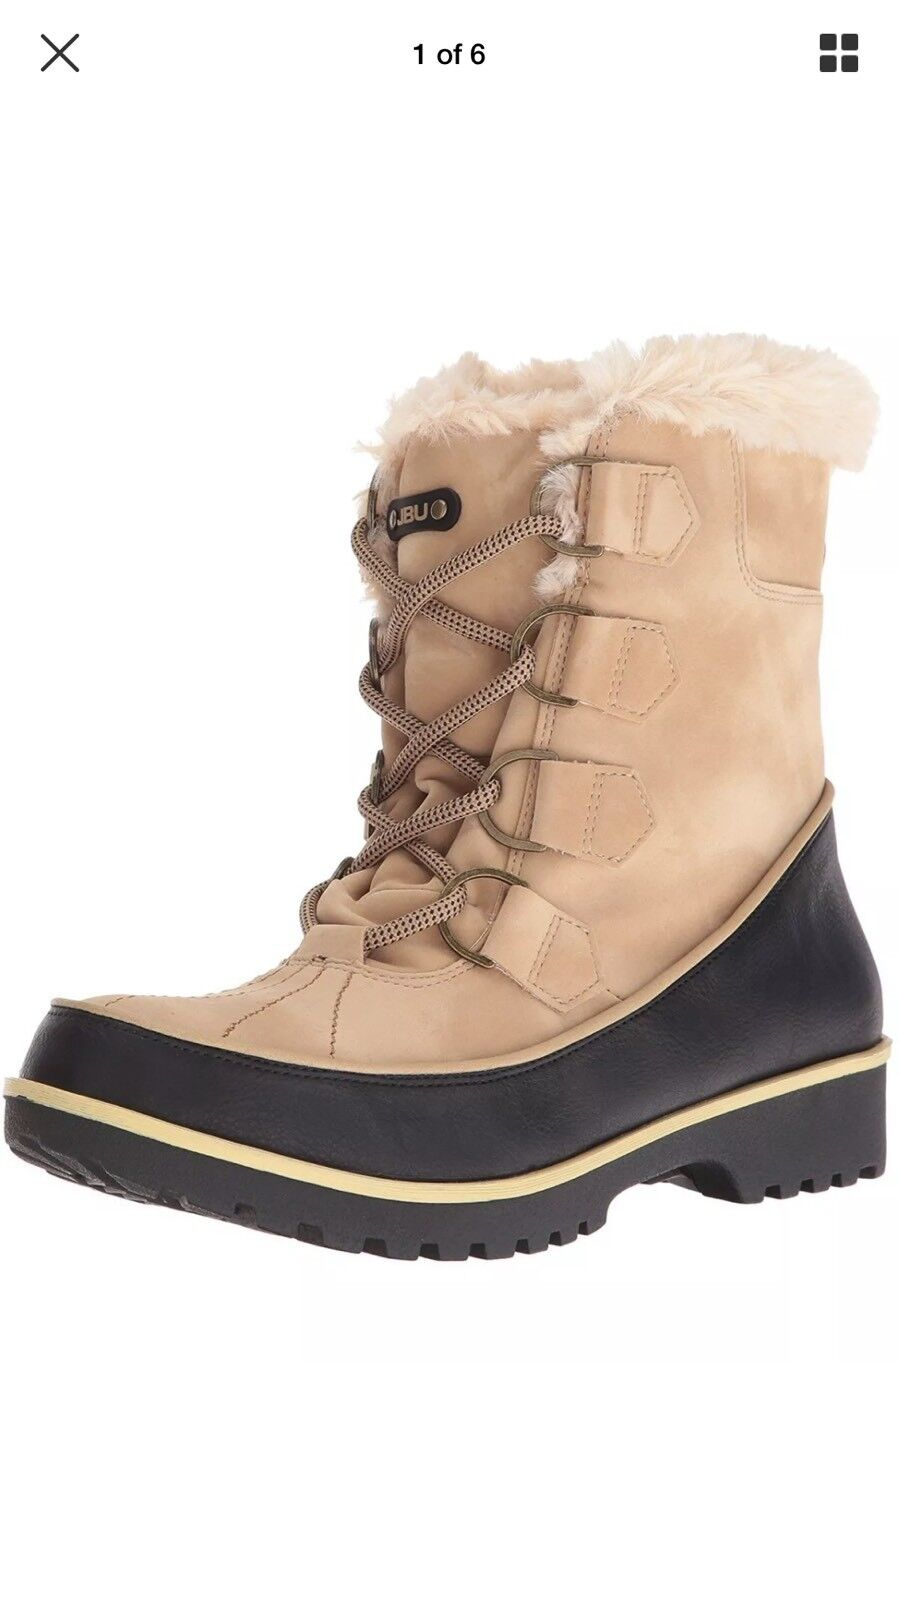 JBU Womens Mendocino Lace Up Cold Weather Boots shoes Tan 71 2 M